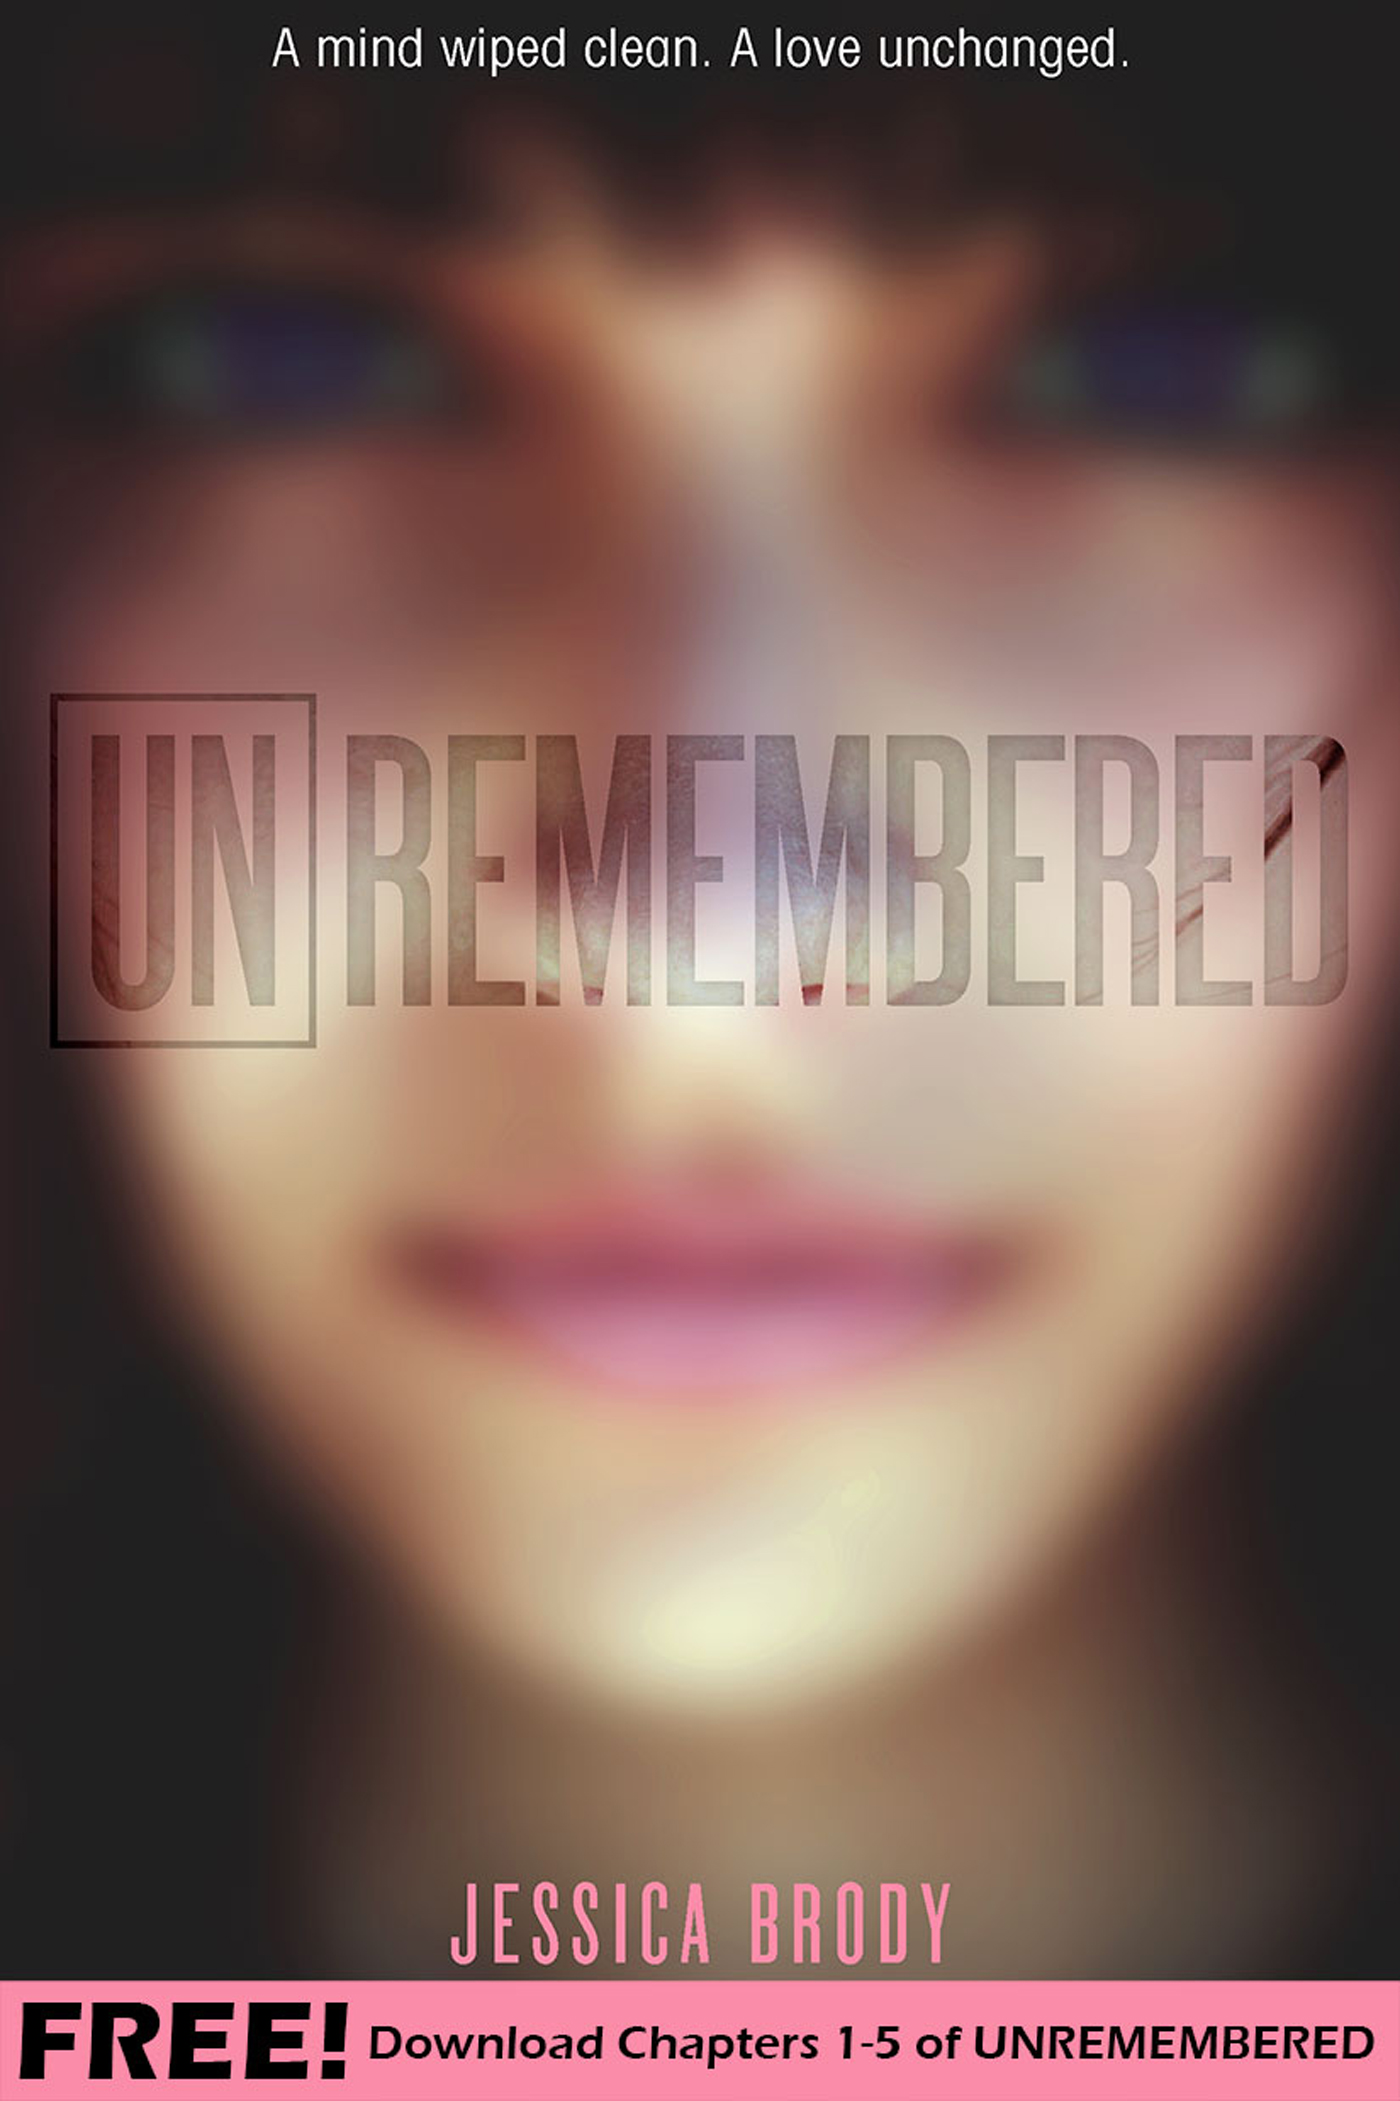 Unremembered: Chapters 1-5